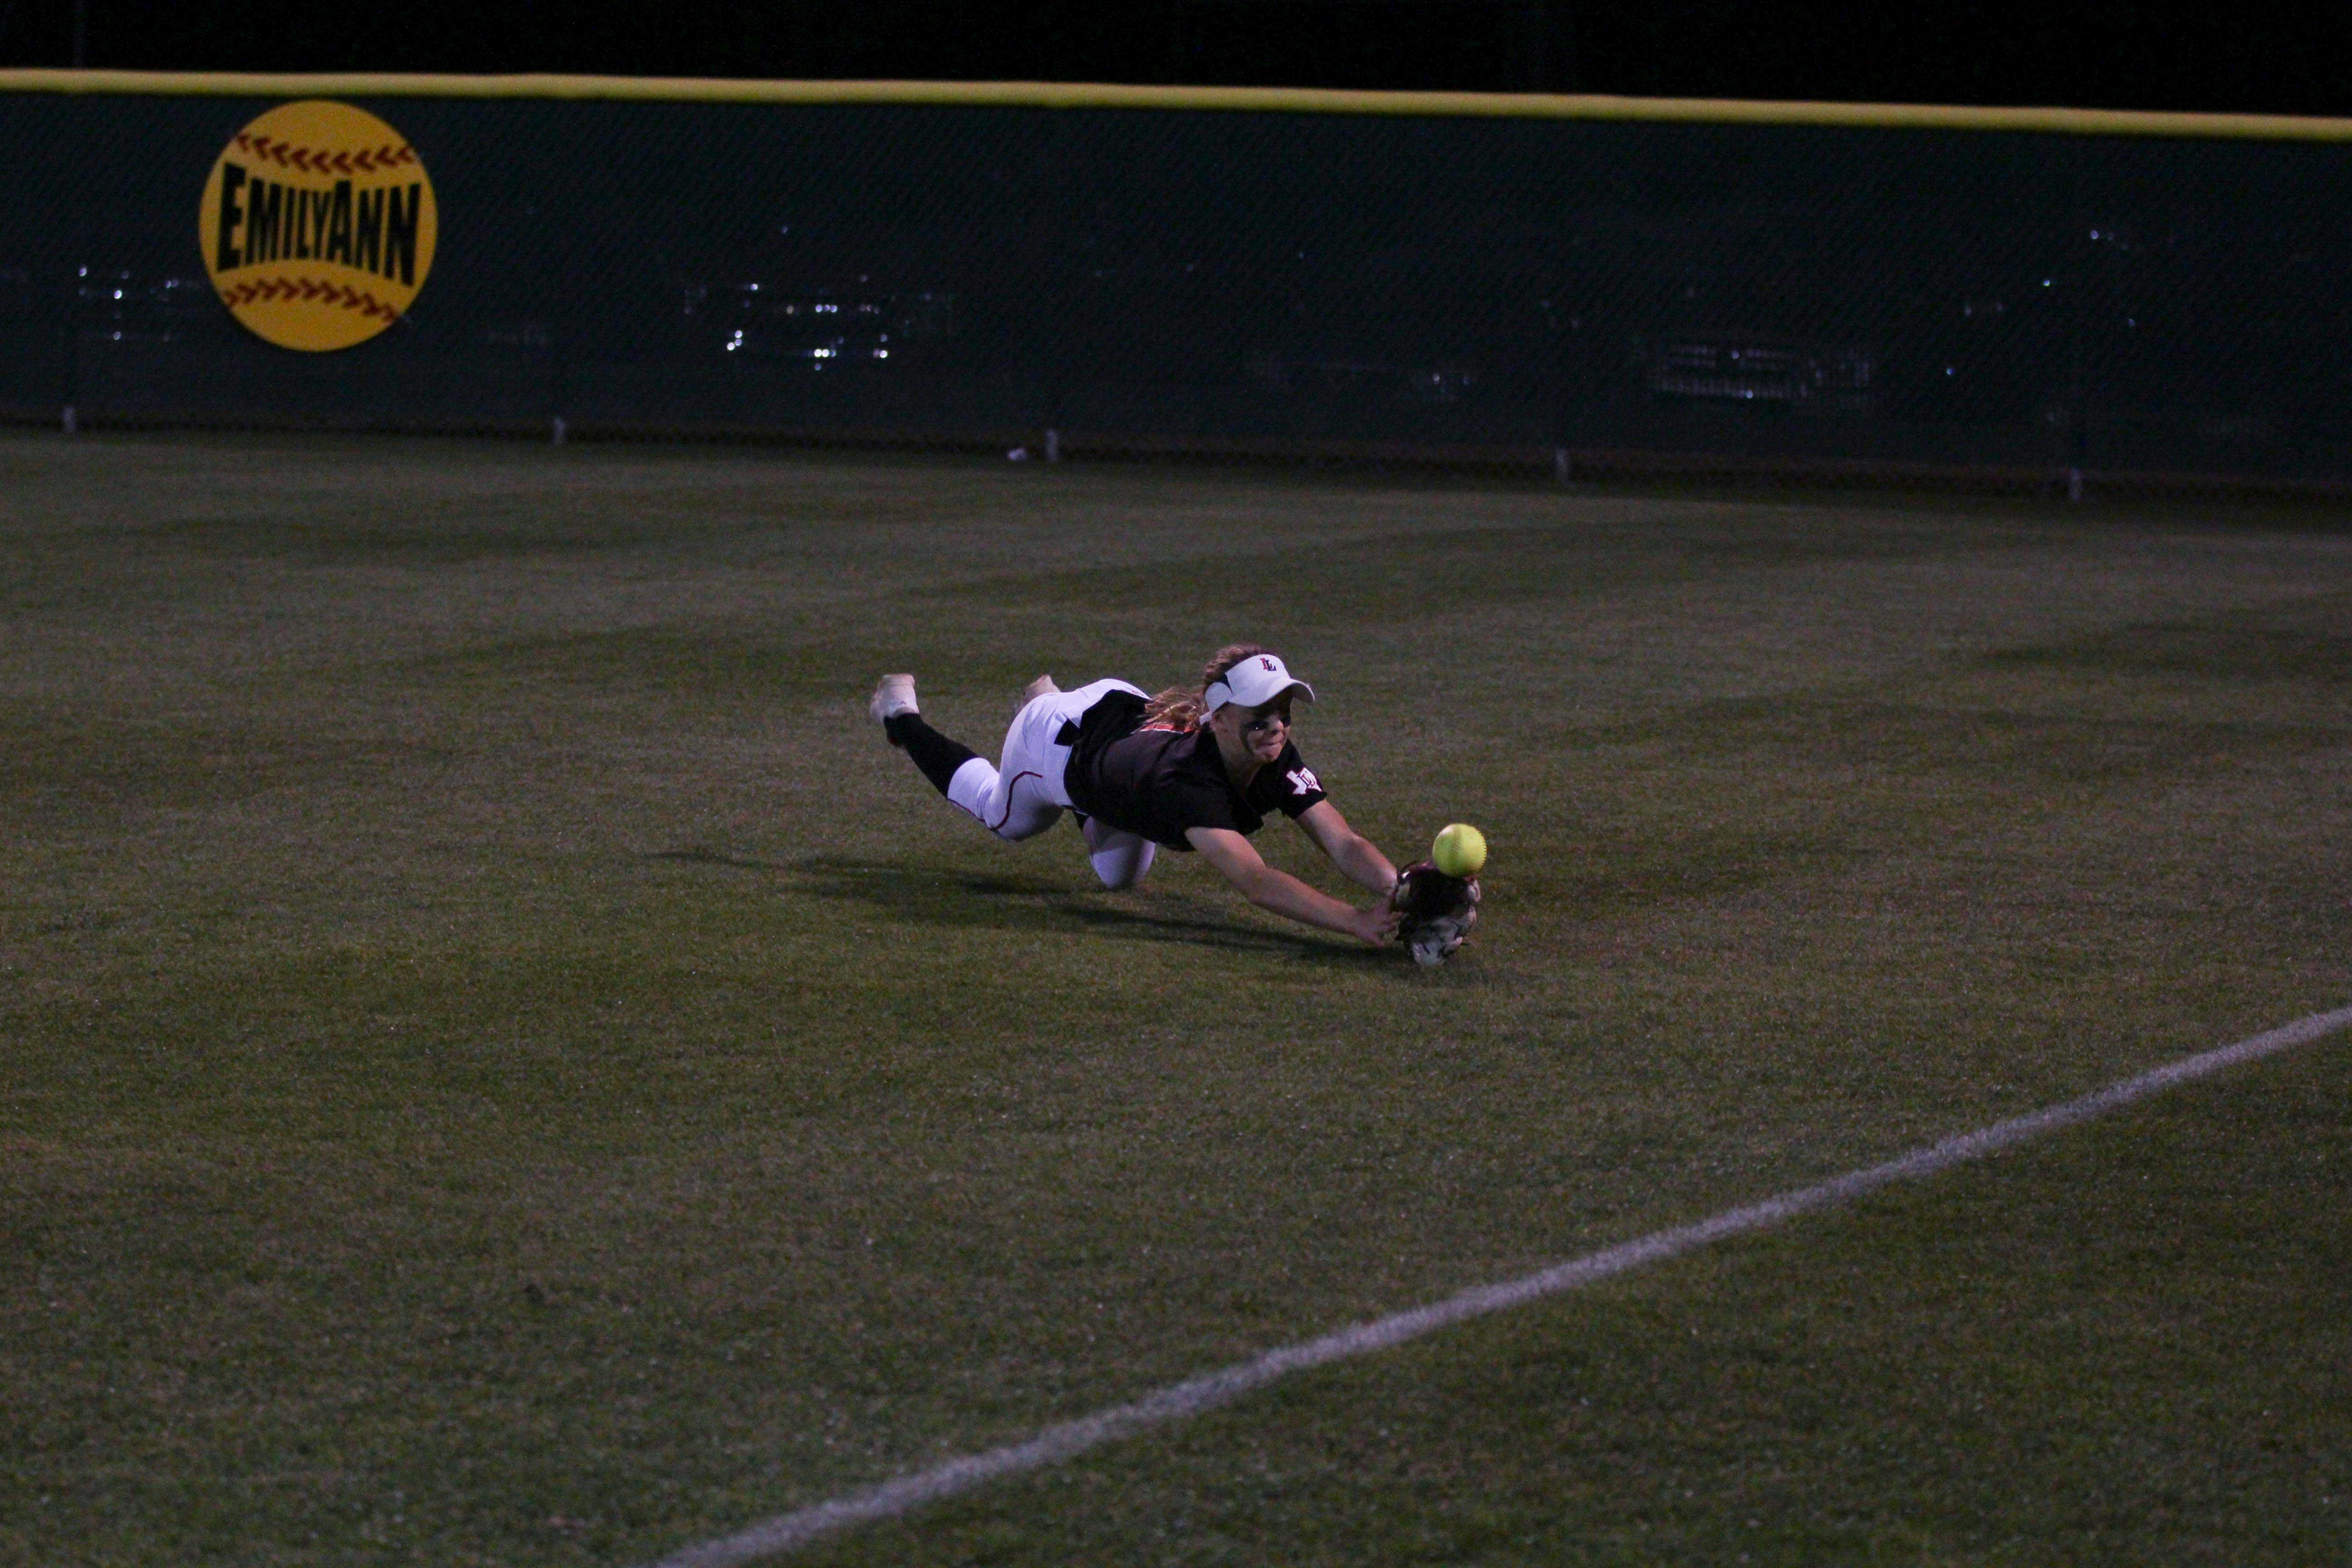 Sophomore Kim Lyne, playing right field, attempts to catch a fly ball in the outfield.